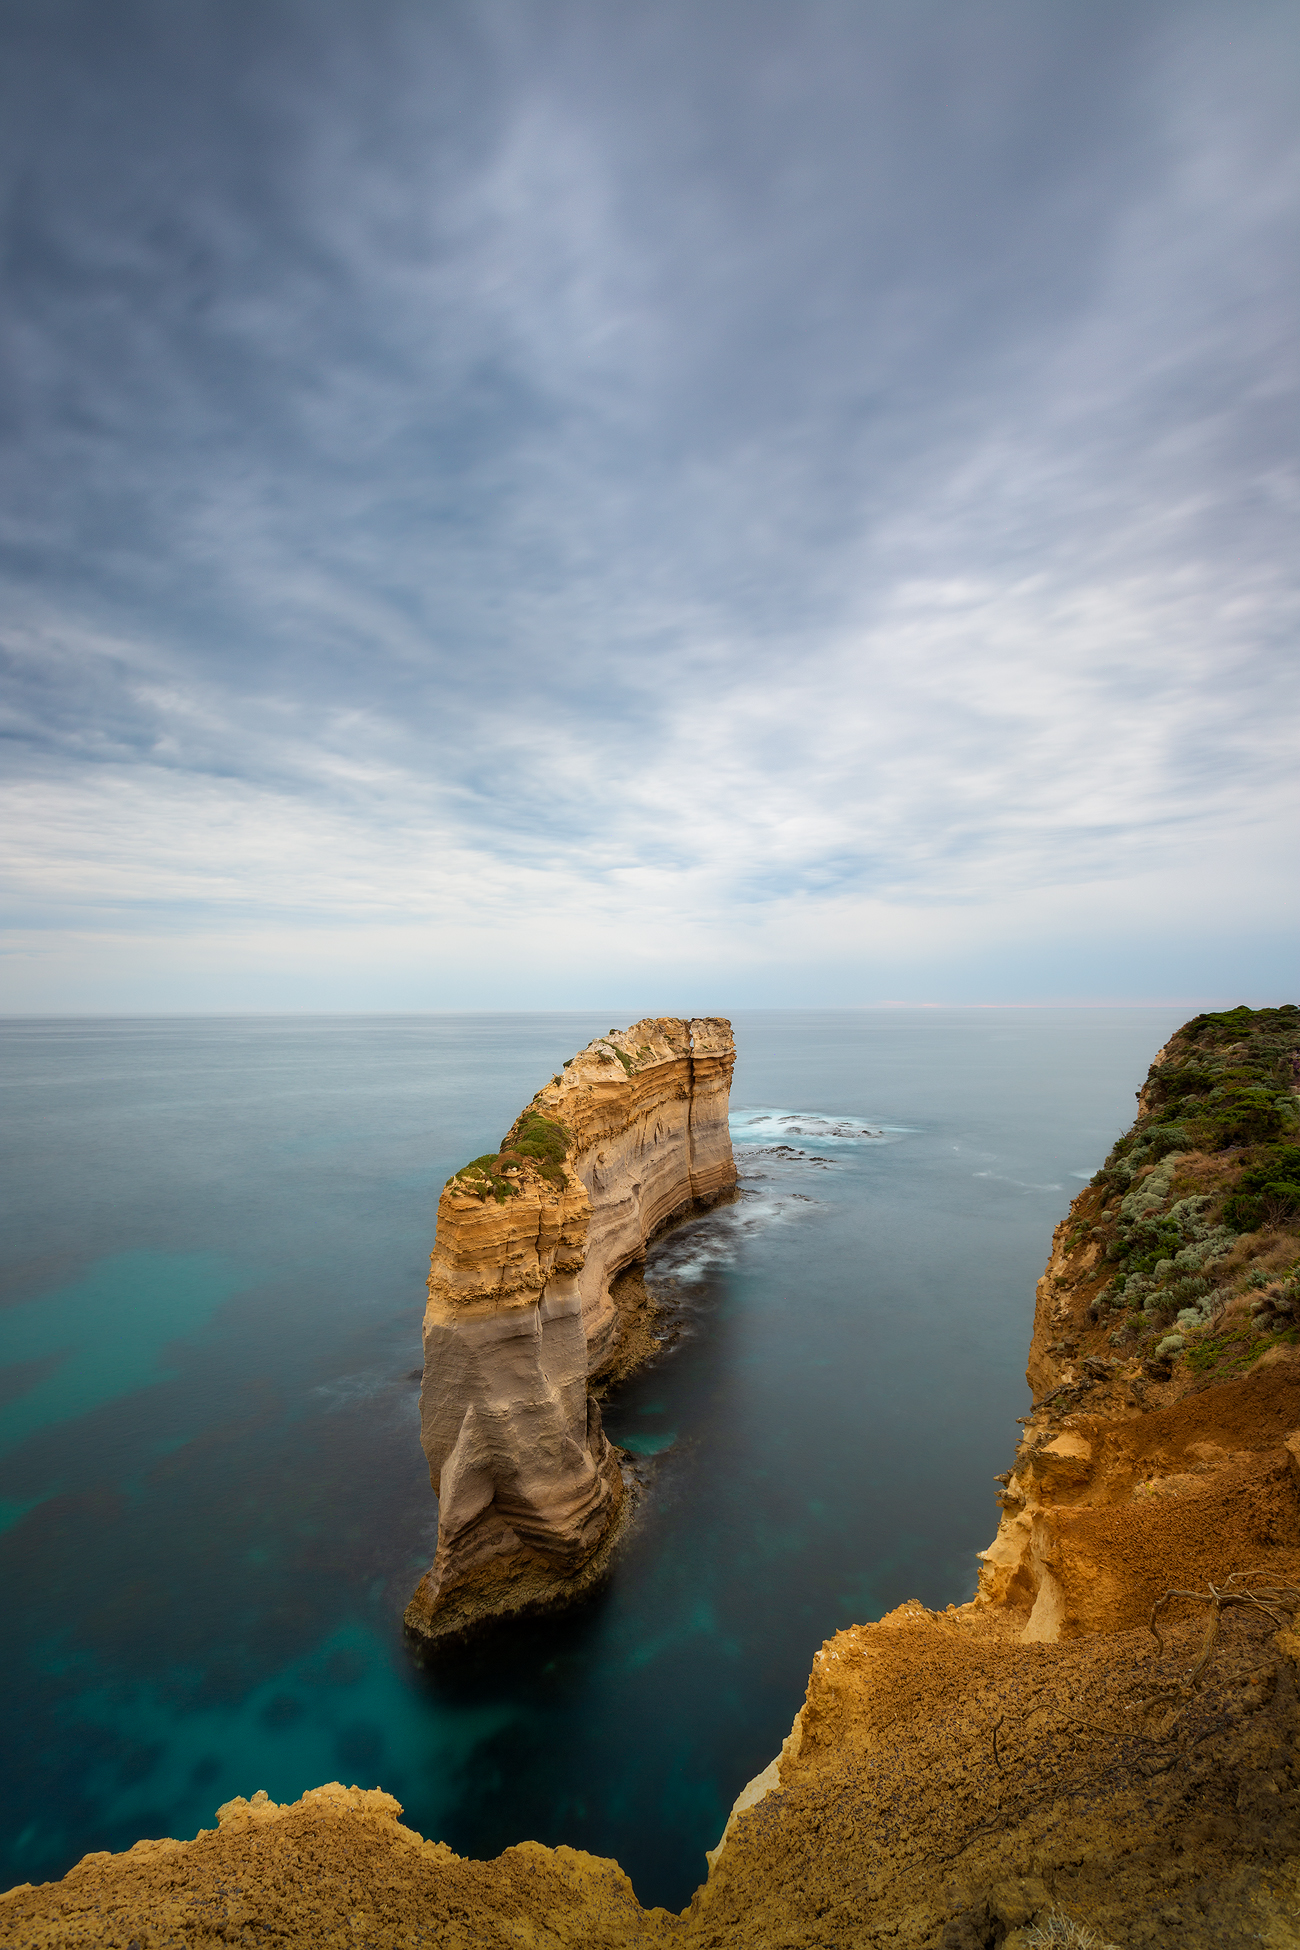 Razorback Sunset - Loch Ard Gorge, Great Ocean Road, Australia | Holiday with We Are Raw Photography Tours